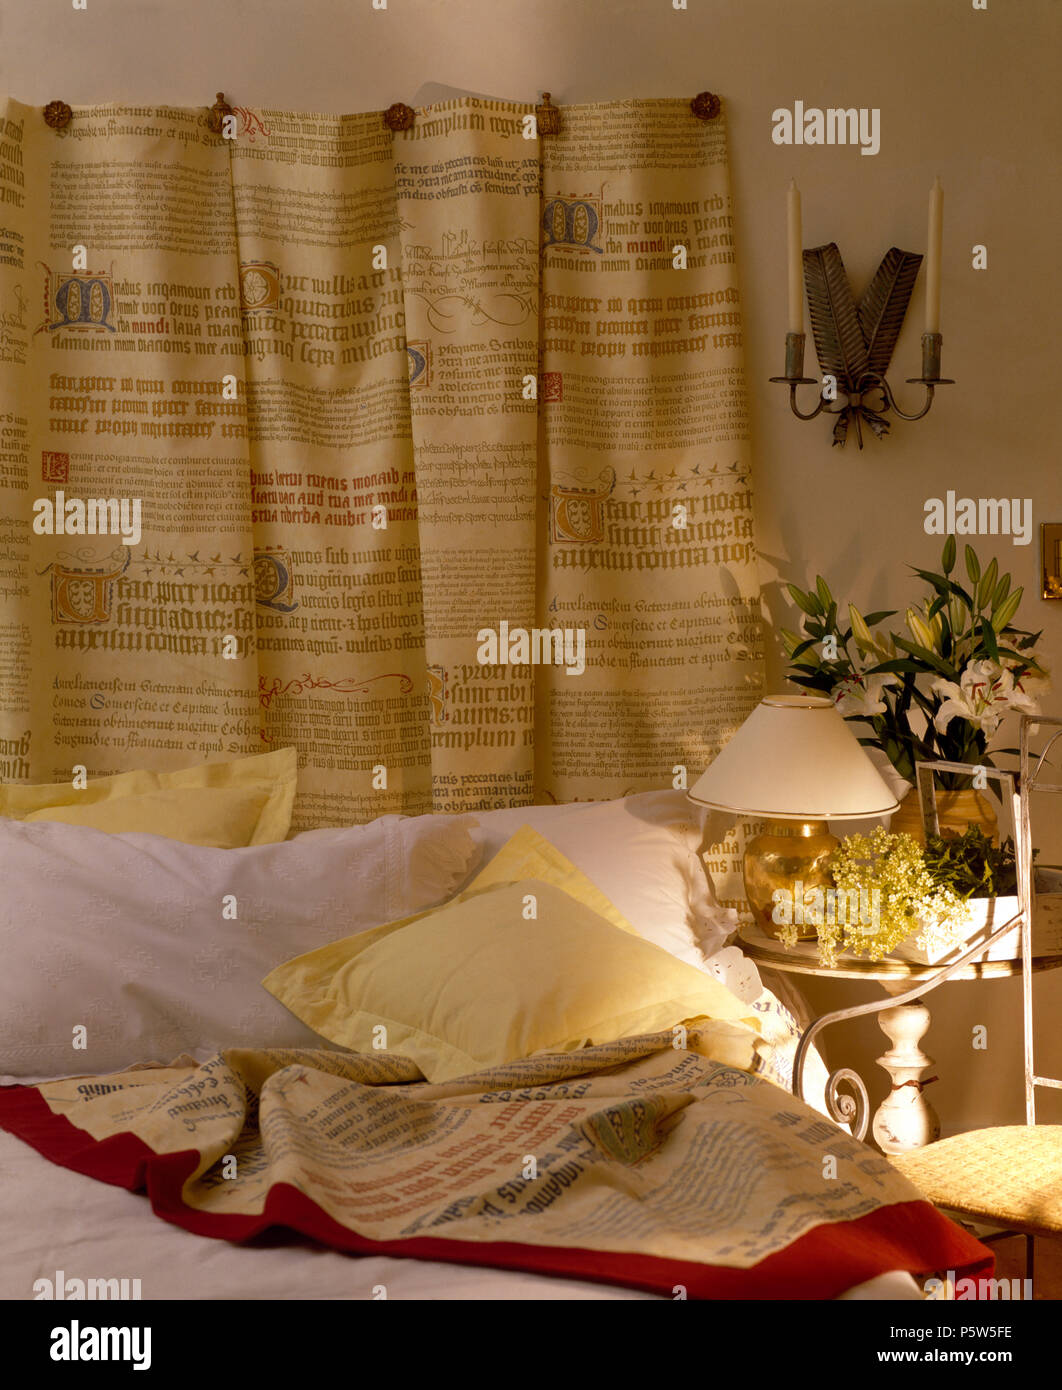 Hand Lettered Hanging On Wall Above Bed In An Economy Style Bedroom Stock Photo Alamy